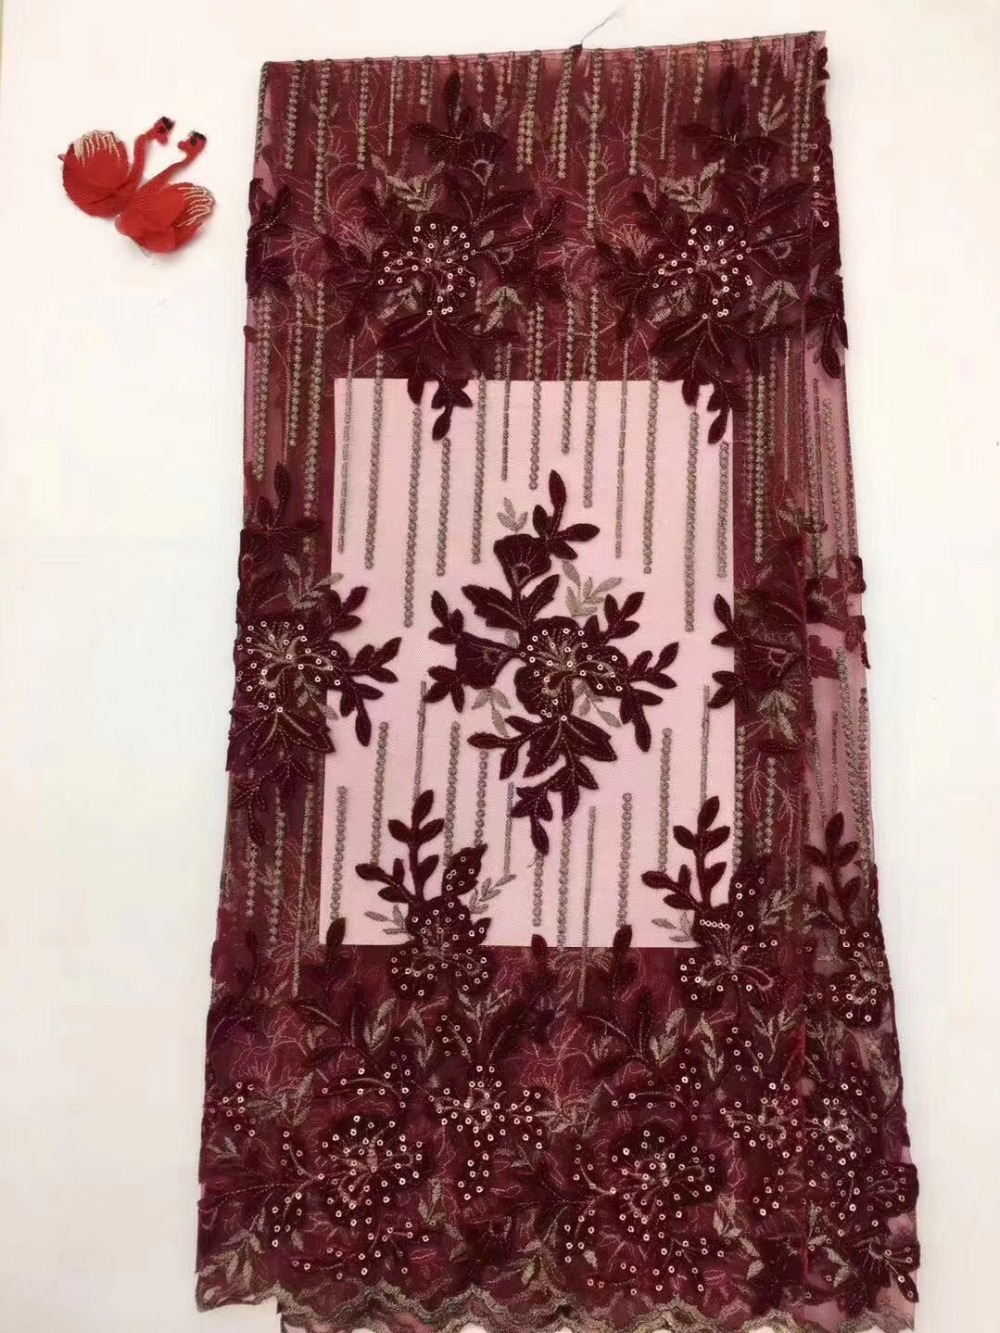 African velvet Lace Fabric 2019 High Quality Lace Nigerian Lace Fabric With Sequin aso ebi Embroidery Tulle French Lace Women African velvet Lace Fabric 2019 High Quality Lace Nigerian Lace Fabric With Sequin aso ebi Embroidery Tulle French Lace Women